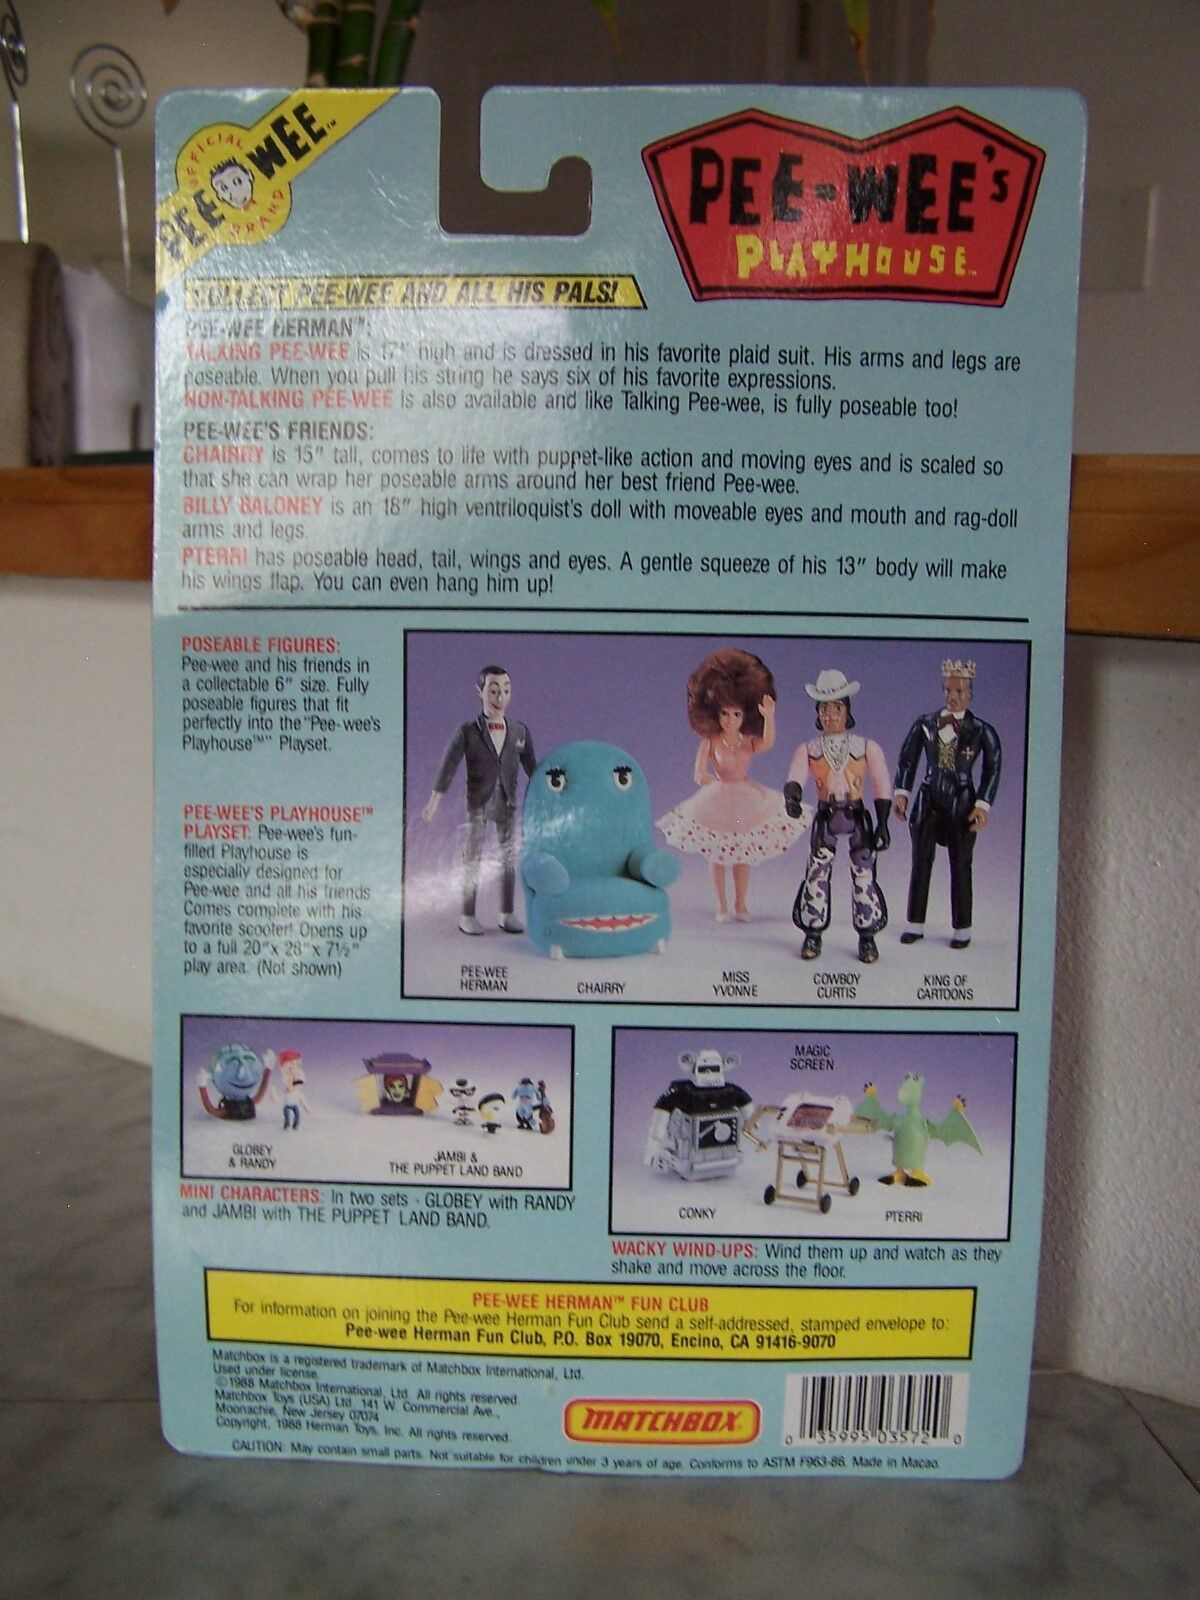 1988 PEE-WEE Playhouse Vintage Matchbox PTERRI Wind Figure Up toy action Figure Wind (NEW) cc149f